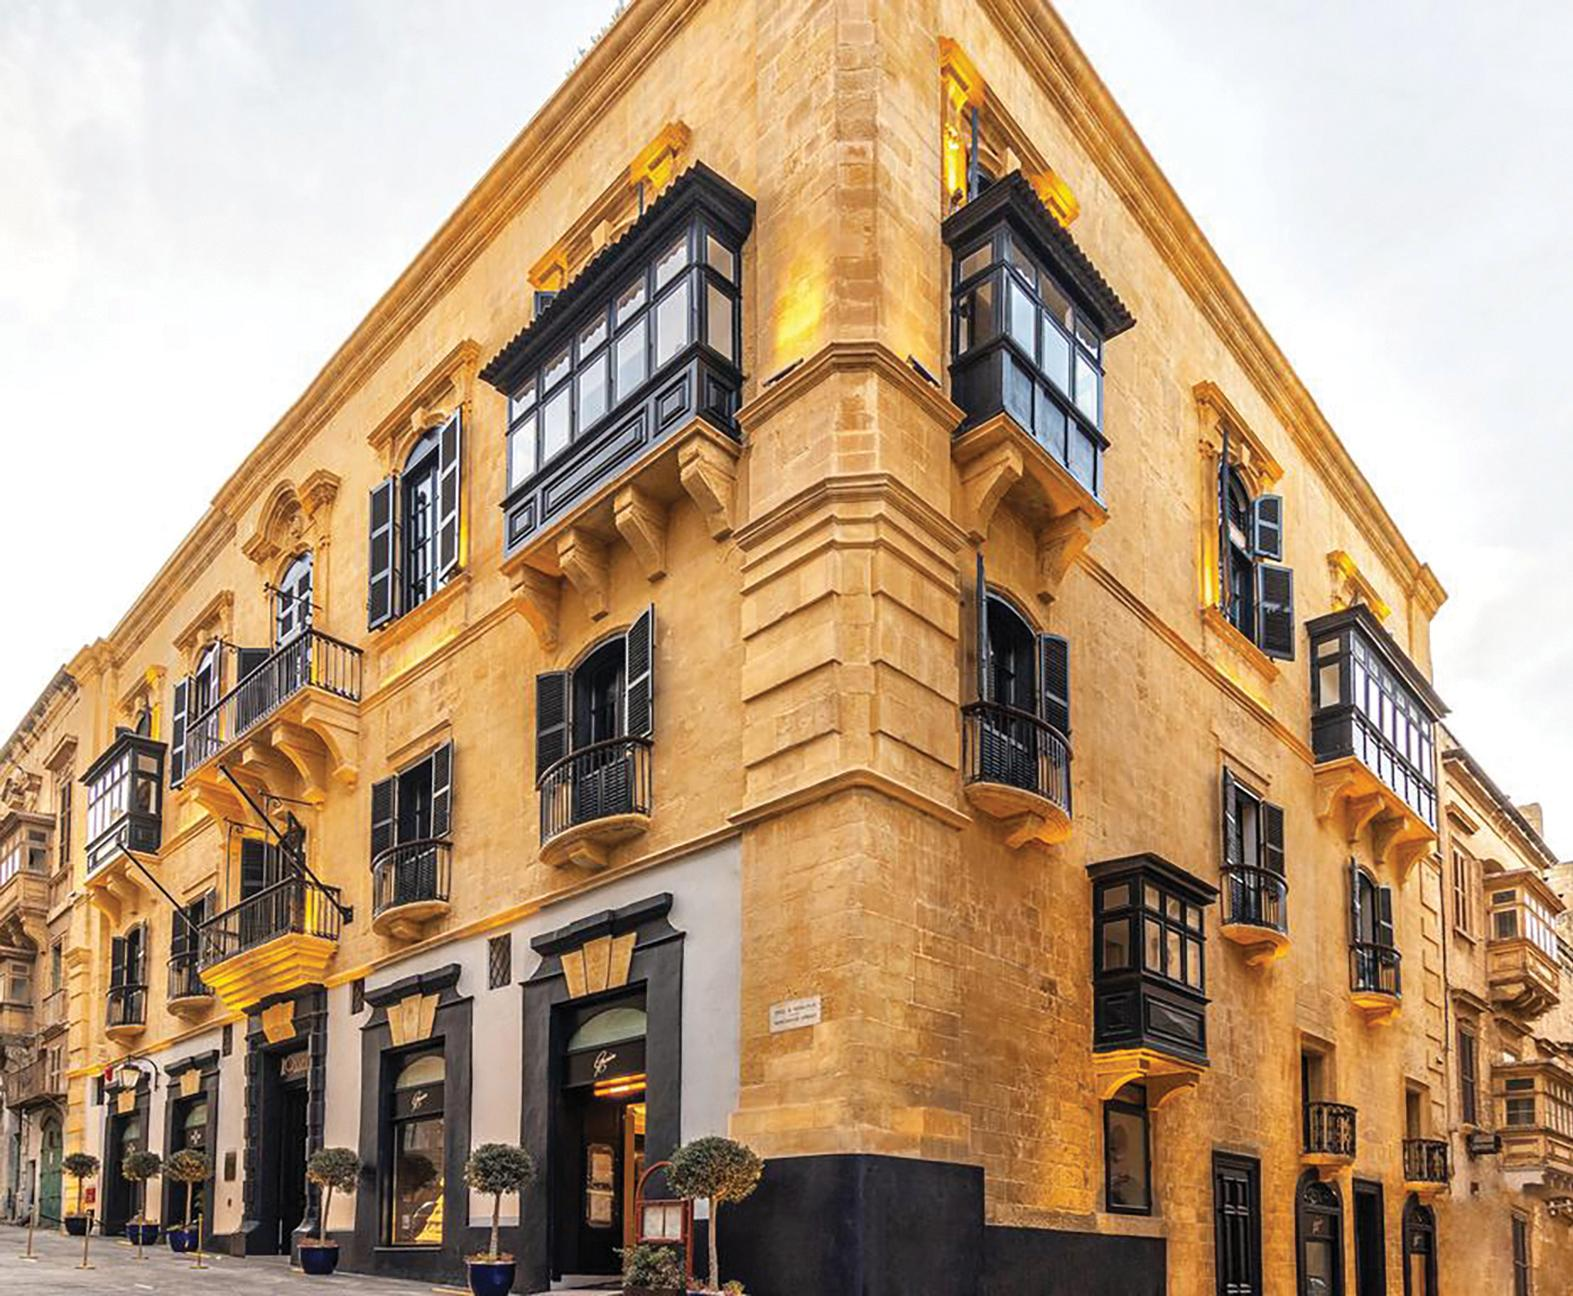 The German consulate was formerly housed in this 17th-century house in Merchants Street, corner with St Christopher Street, Valletta, which is now the Rosselli Hotel.